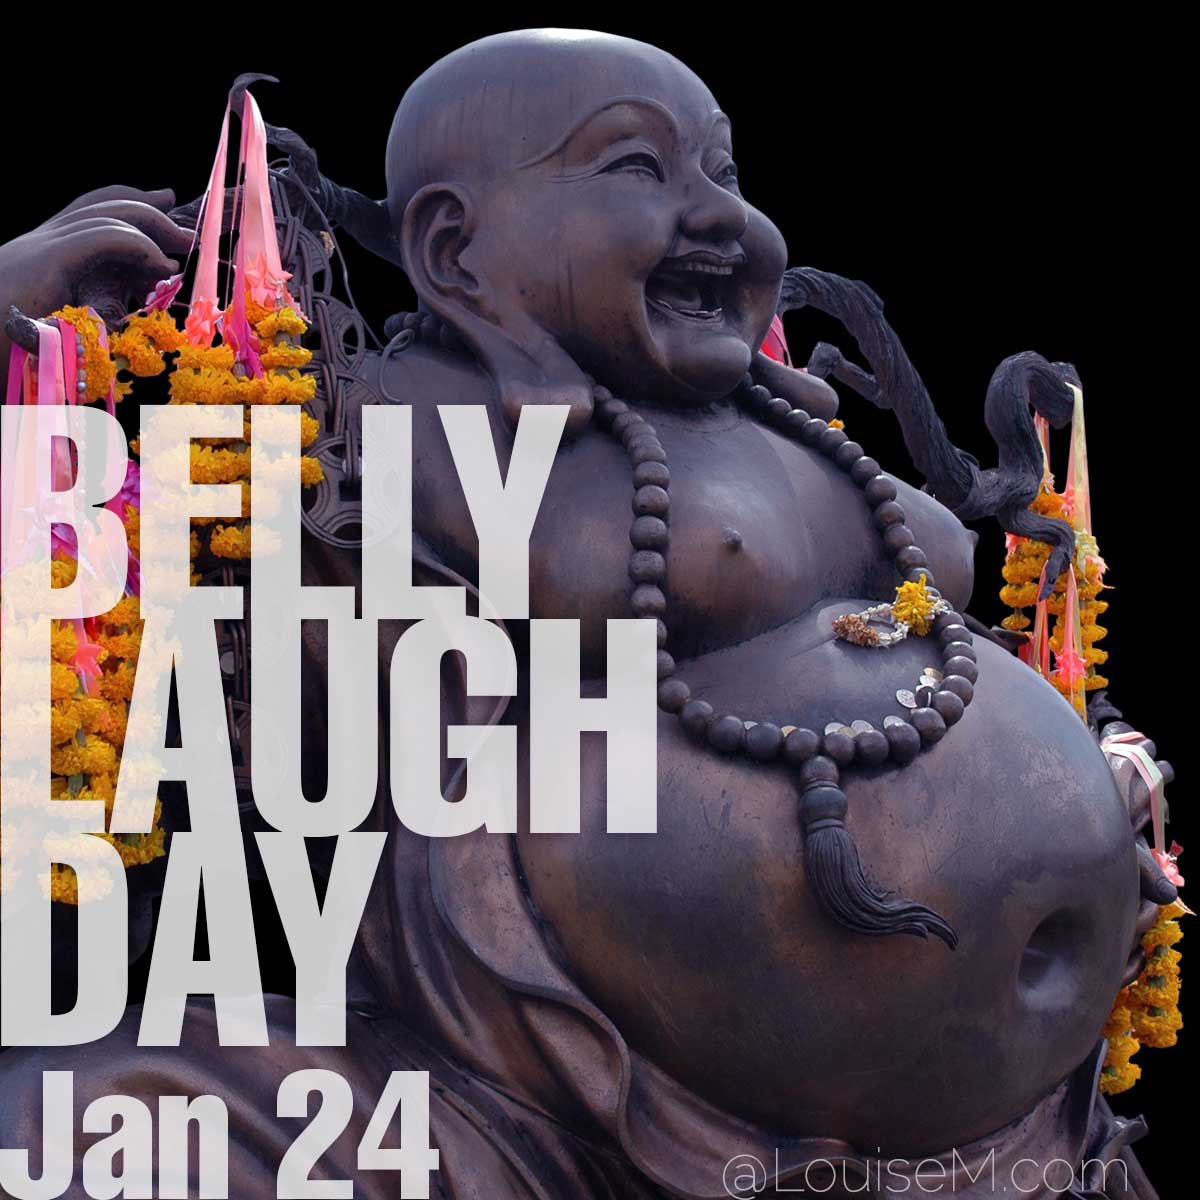 Belly Laugh Day text on photo of fat buddha.